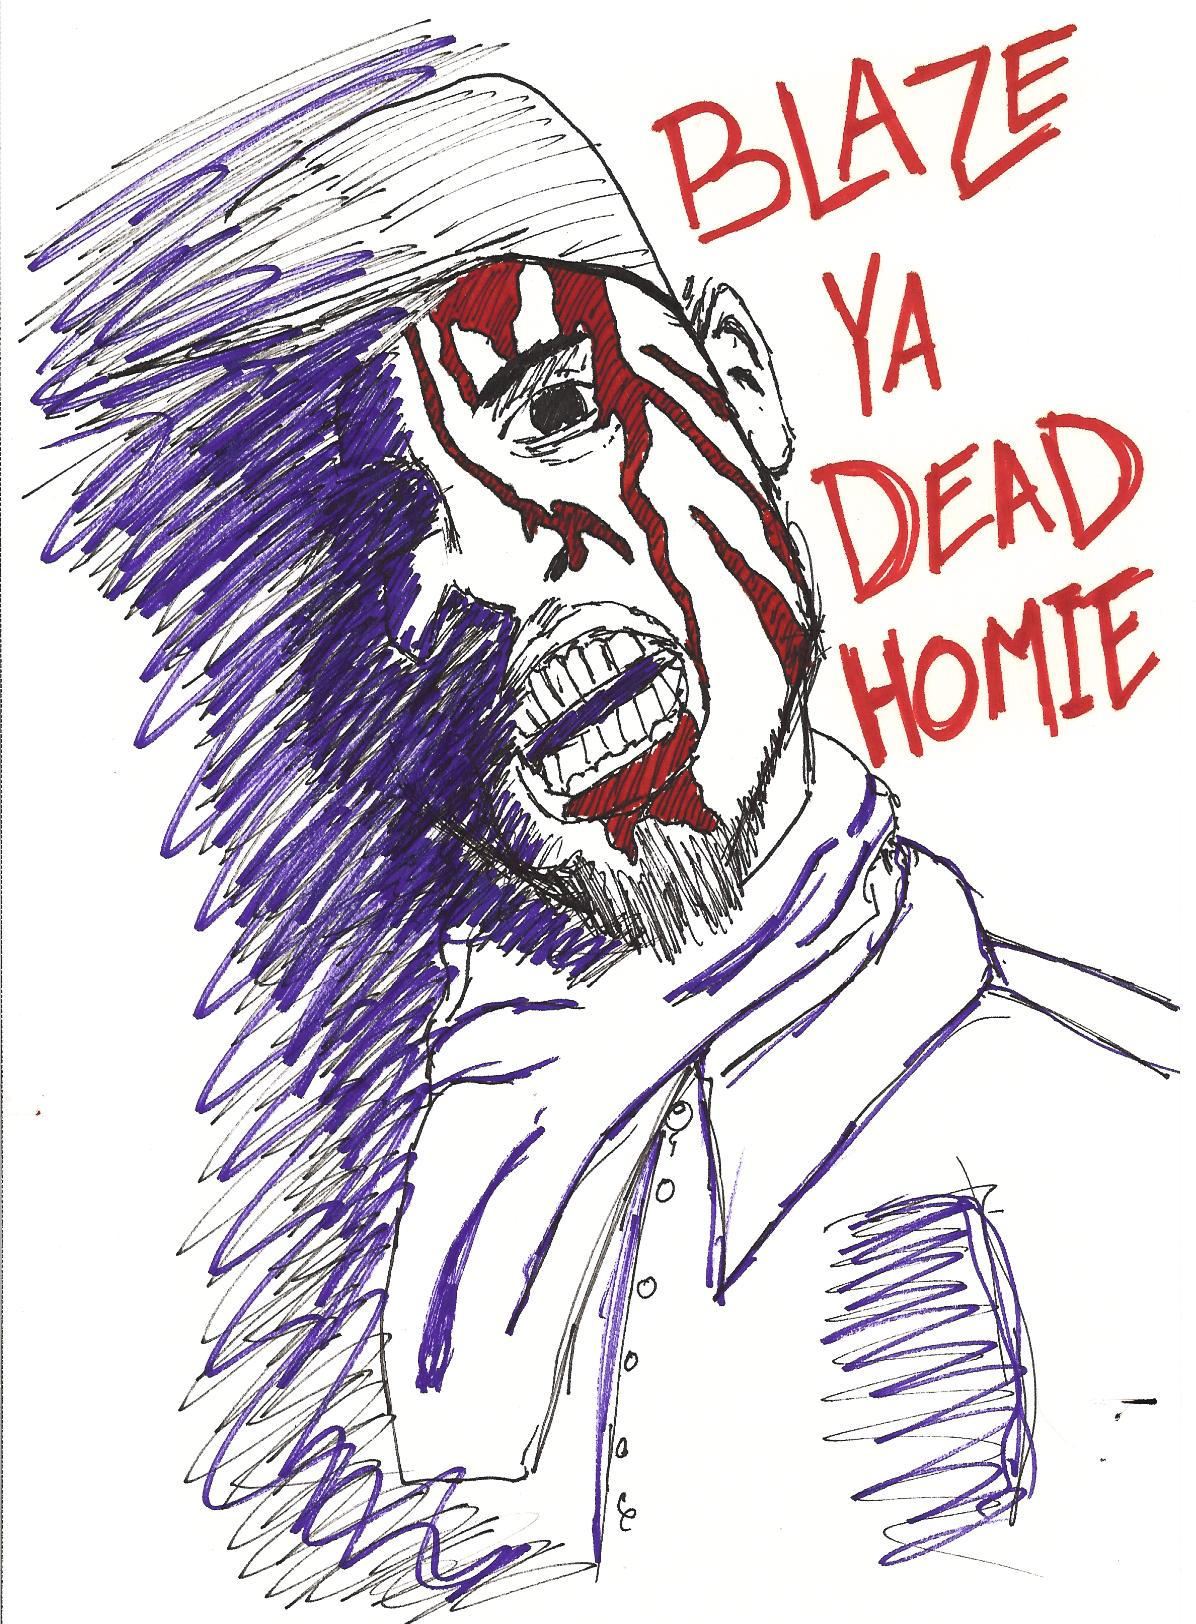 to my dead homie Dead folx by blaze ya dead homie: mr dead folx colton grundy ya dead homie click here now to find out here why others like this song  letssingit is a crowdsourced.